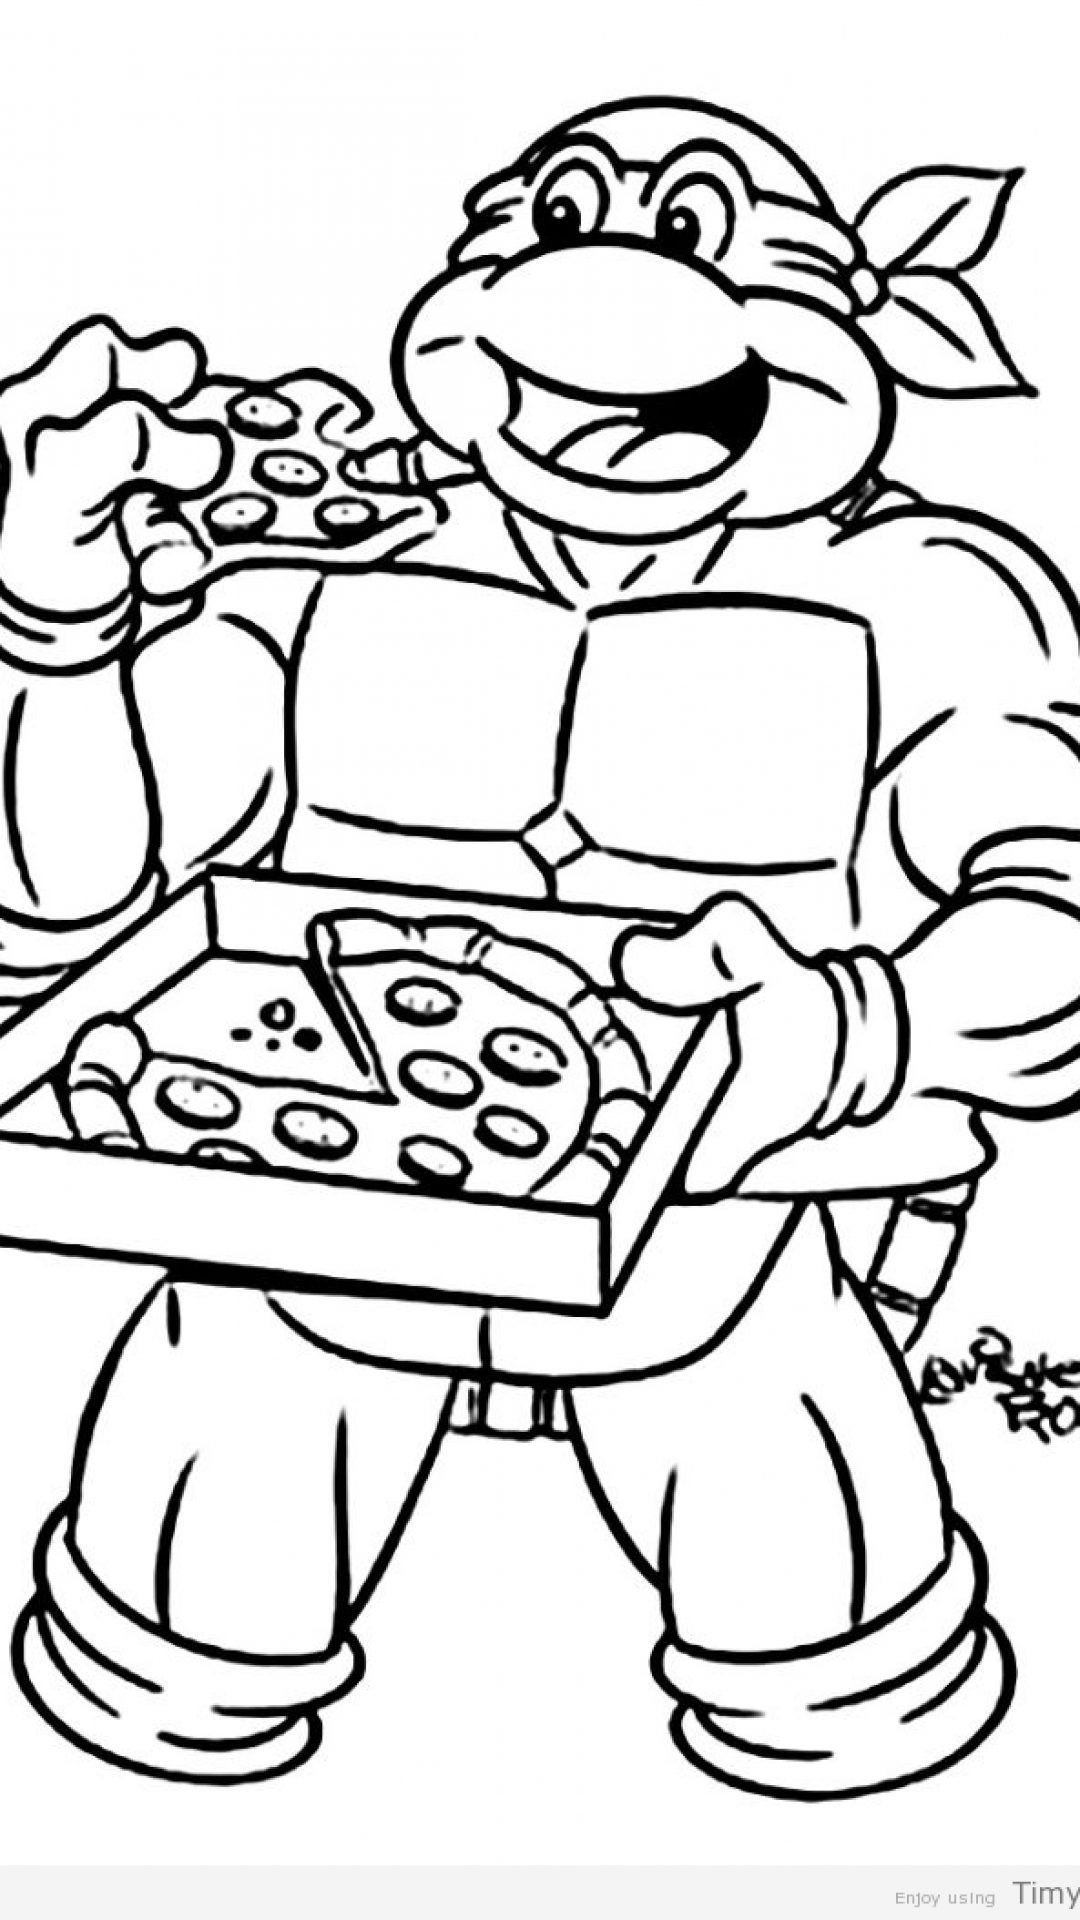 Printable Ninja Coloring Pages Collection Turtle Coloring Pages Ninja Turtle Coloring Pages Snake Coloring Pages